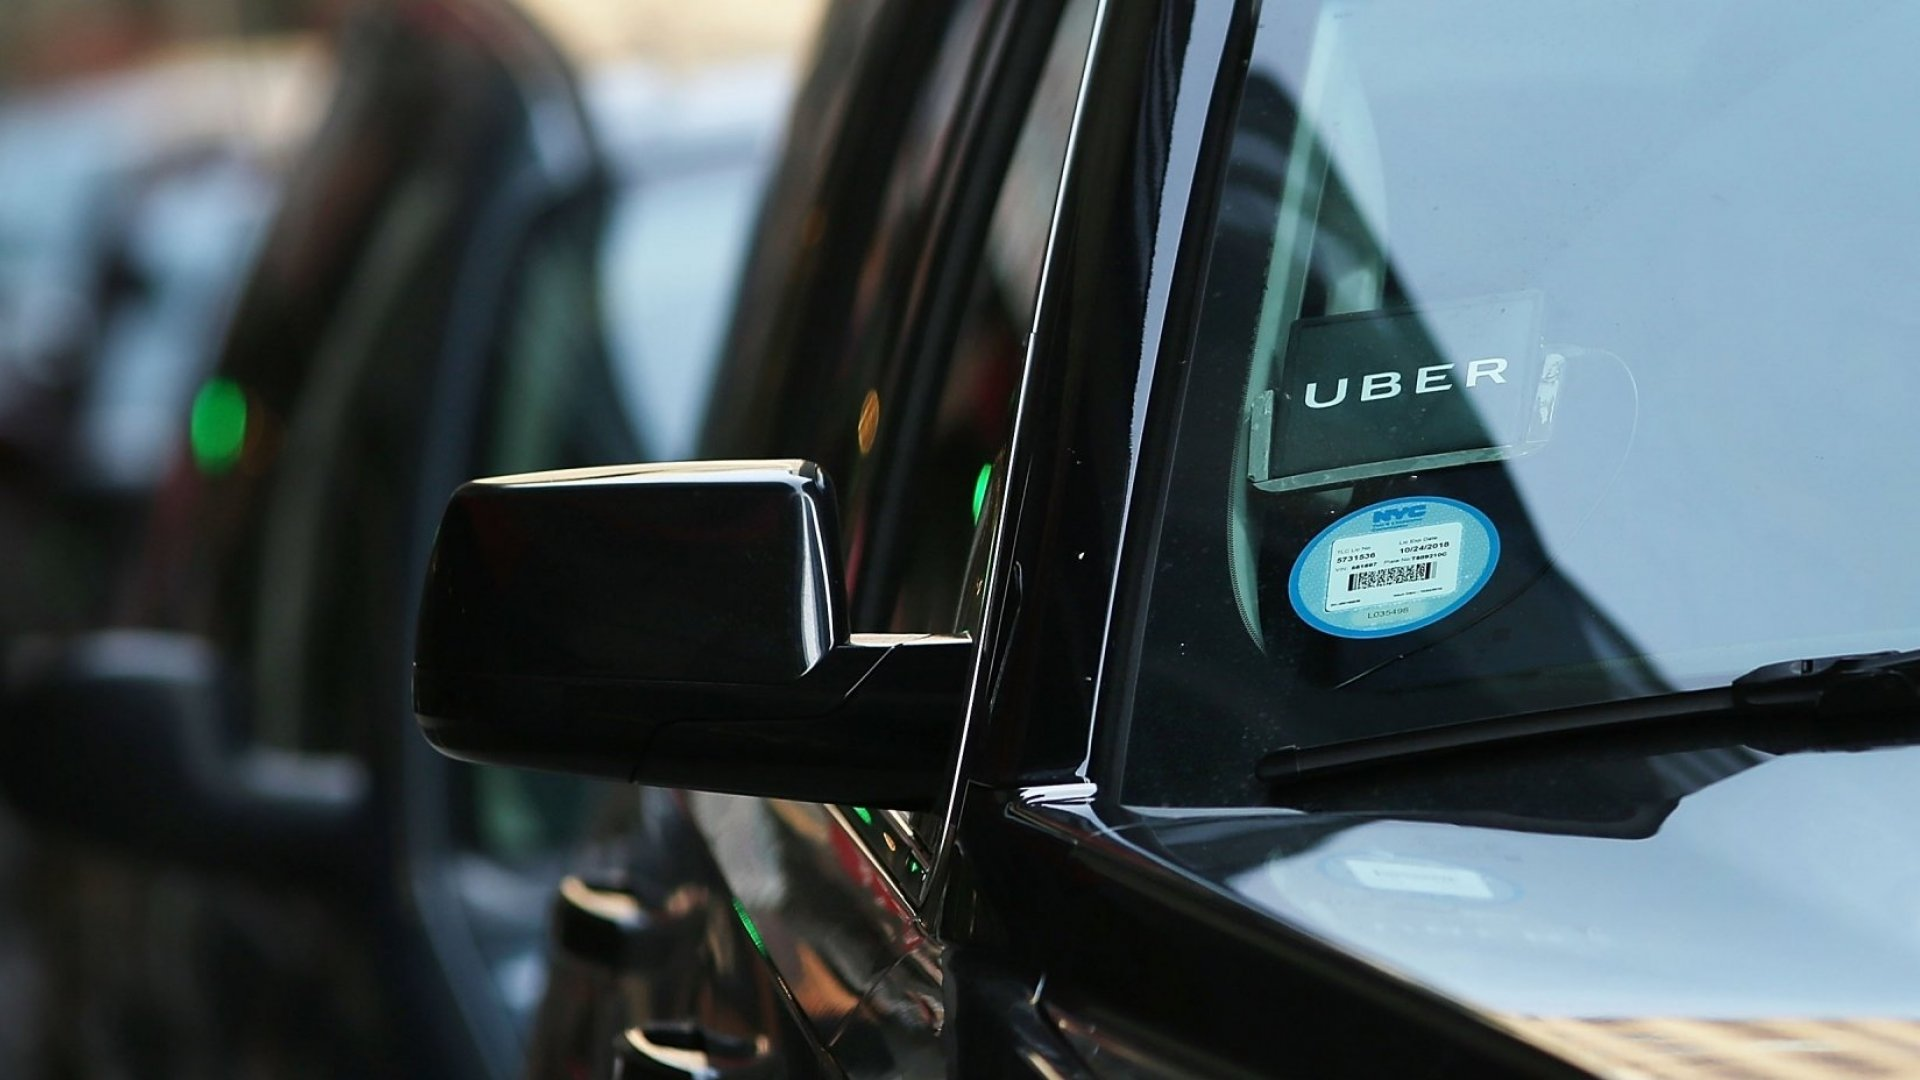 That Guy Who Became Uber's CEO After Replying to a Tweet Has Resigned From the Company